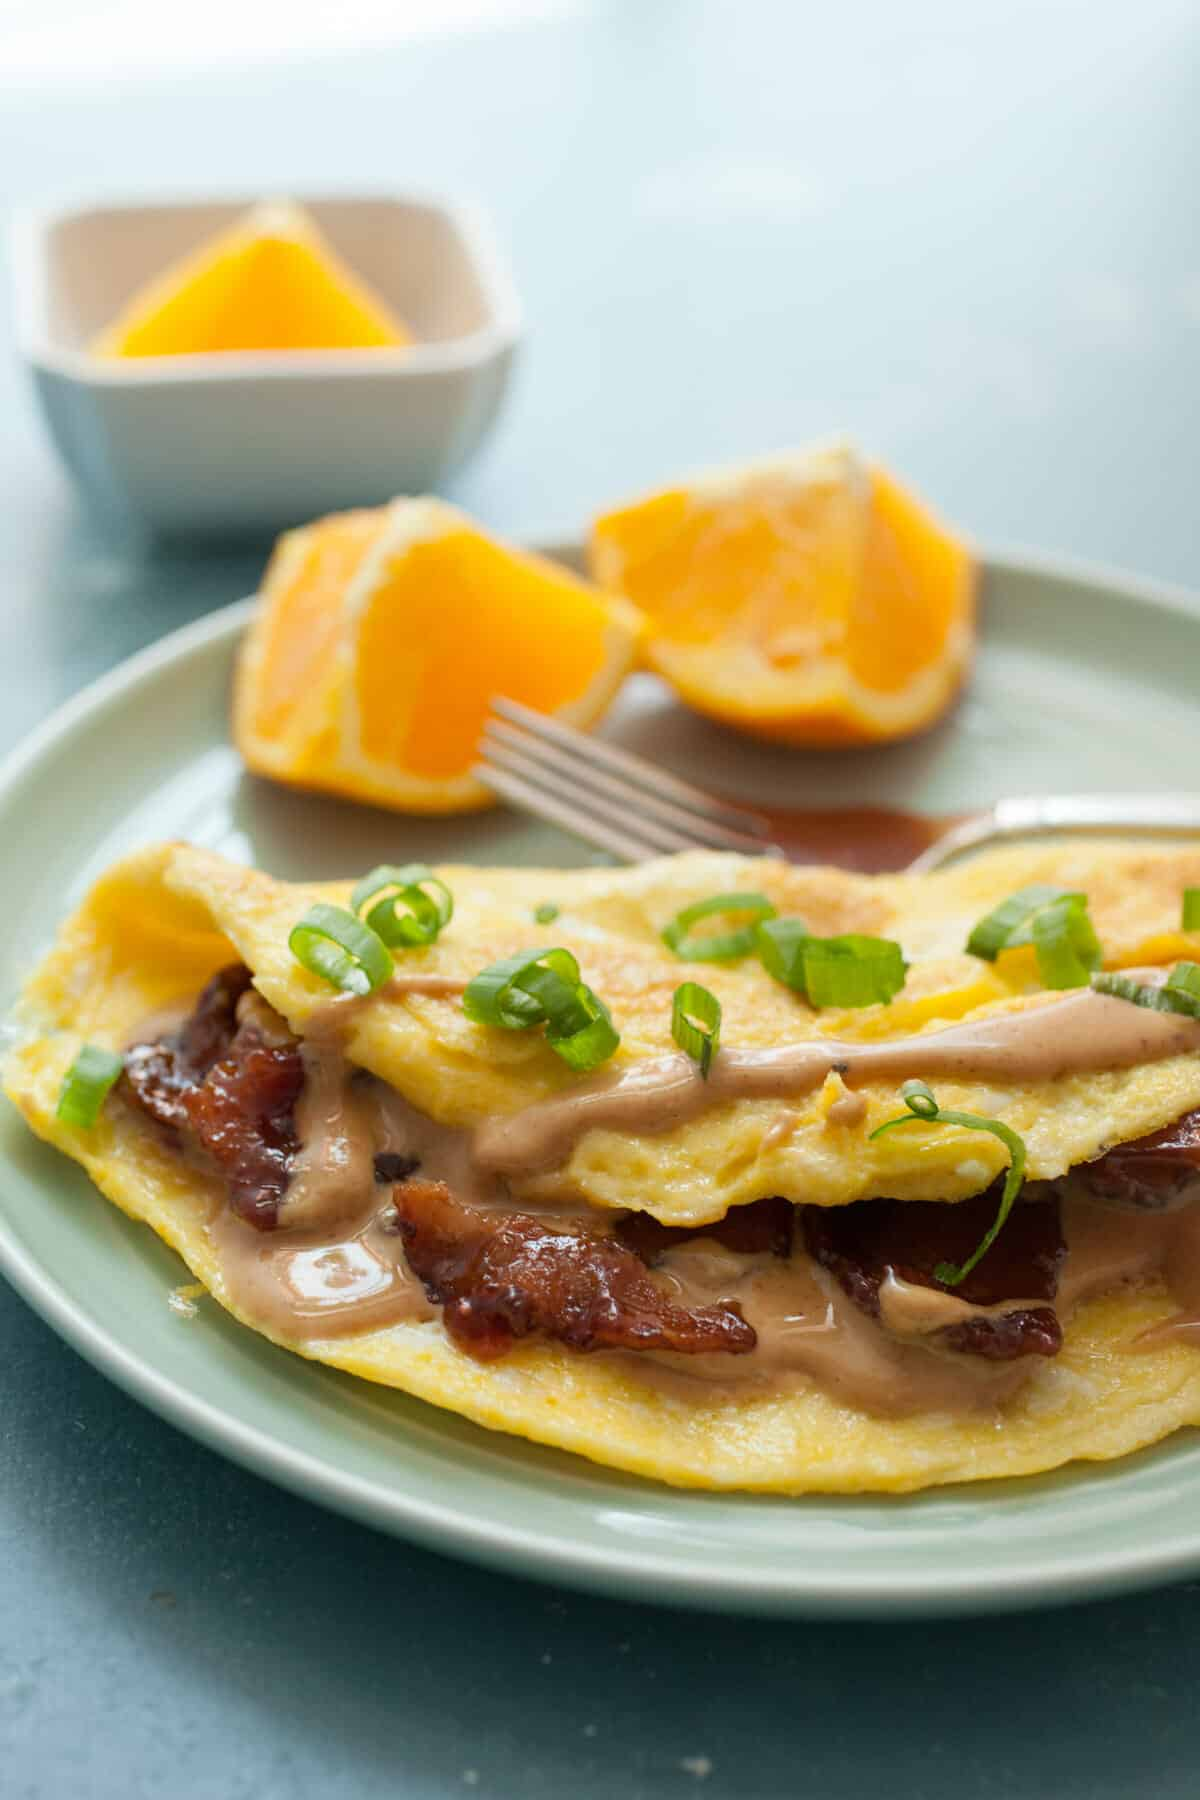 Peanut Butter Omelet with Candied Bacon: This might sound crazy, but with a few tips and tricks this omelet is ridiculously delicious. The key is some perfectly candied bacon! You gotta try this! | macheesmo.com